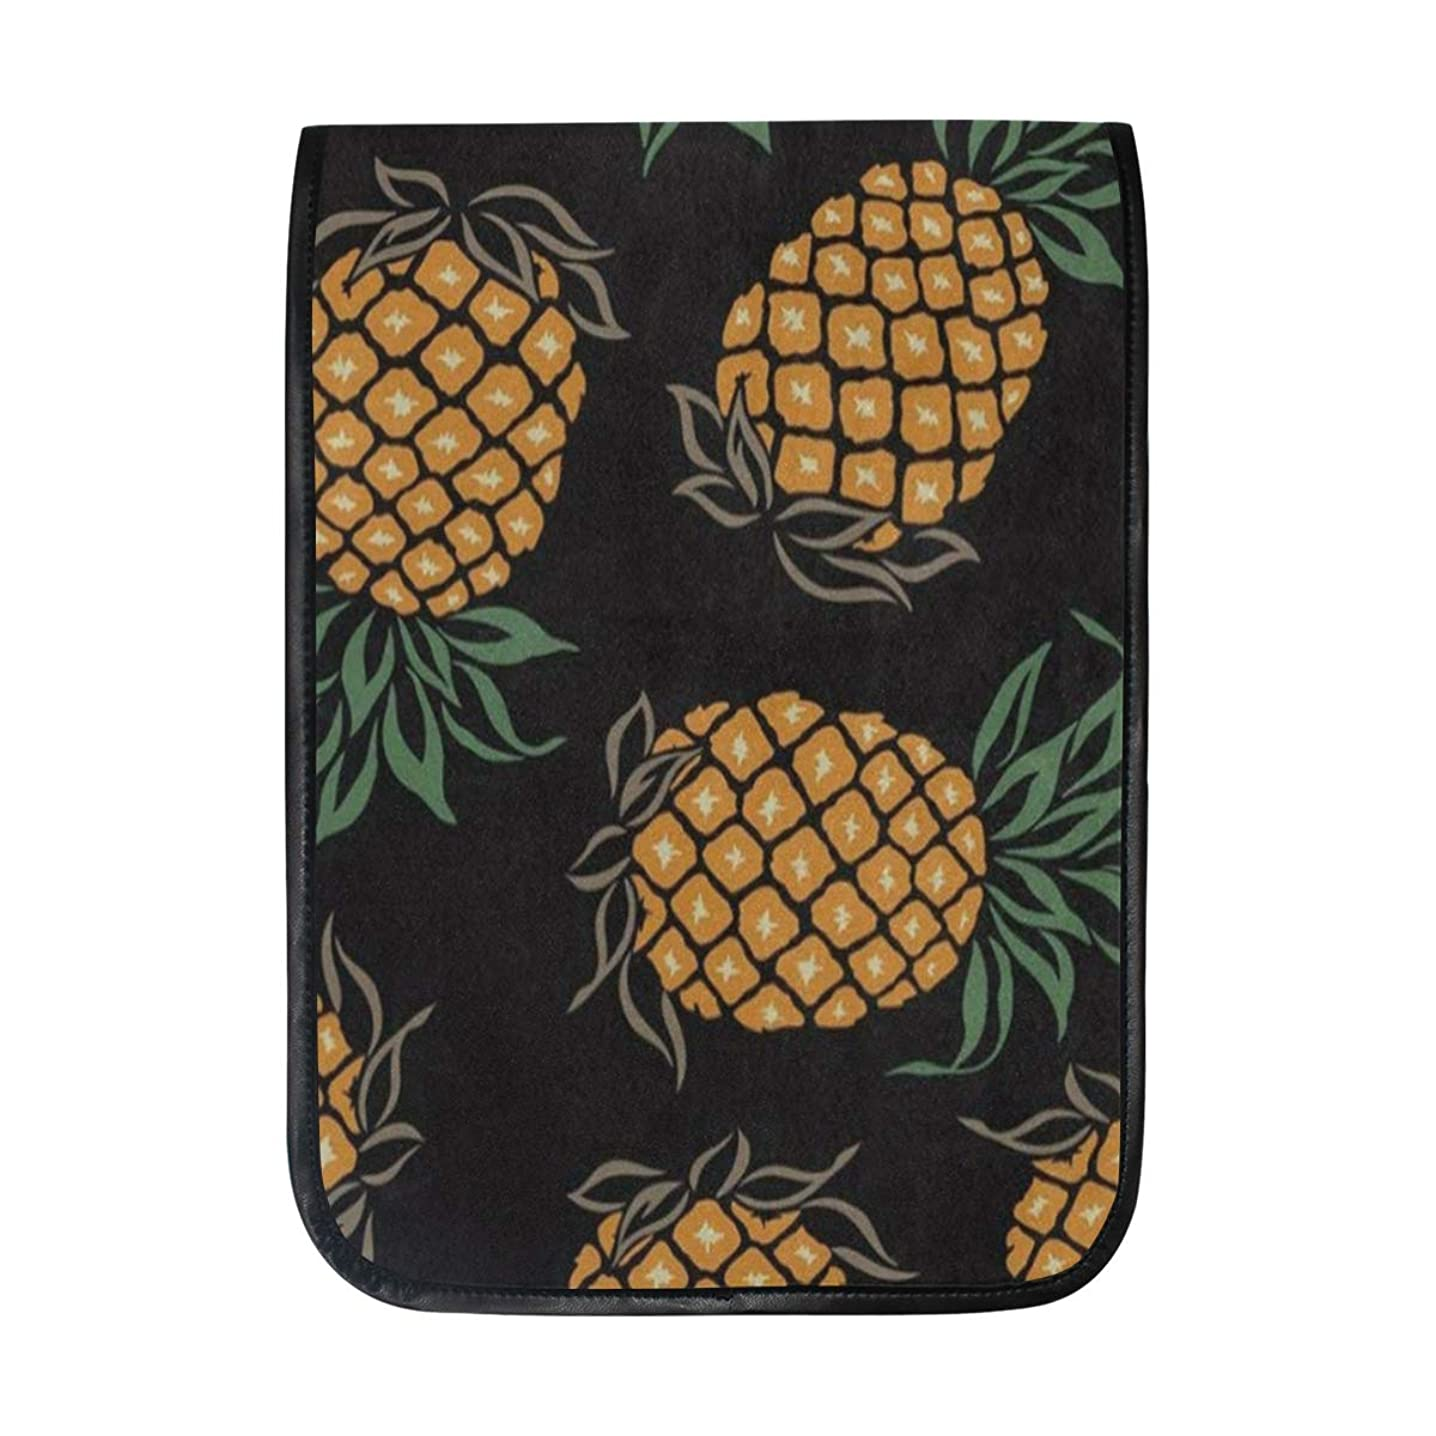 Ipad Pro 12-12.9 inch Sleeve Case Bag for Surface Pro Pineapple Fashion Mac Protective Carrying Cover Handbag for 11